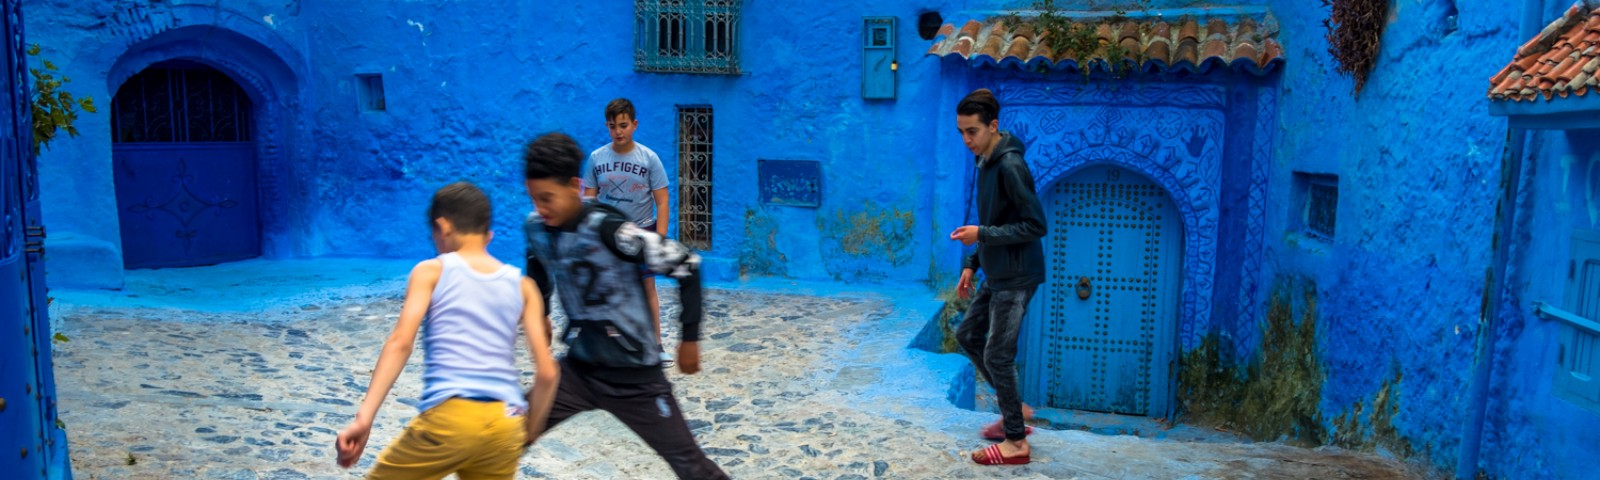 Soccer with 2 on each side in a tiny courtyard in Chefchaoeun, Morocco